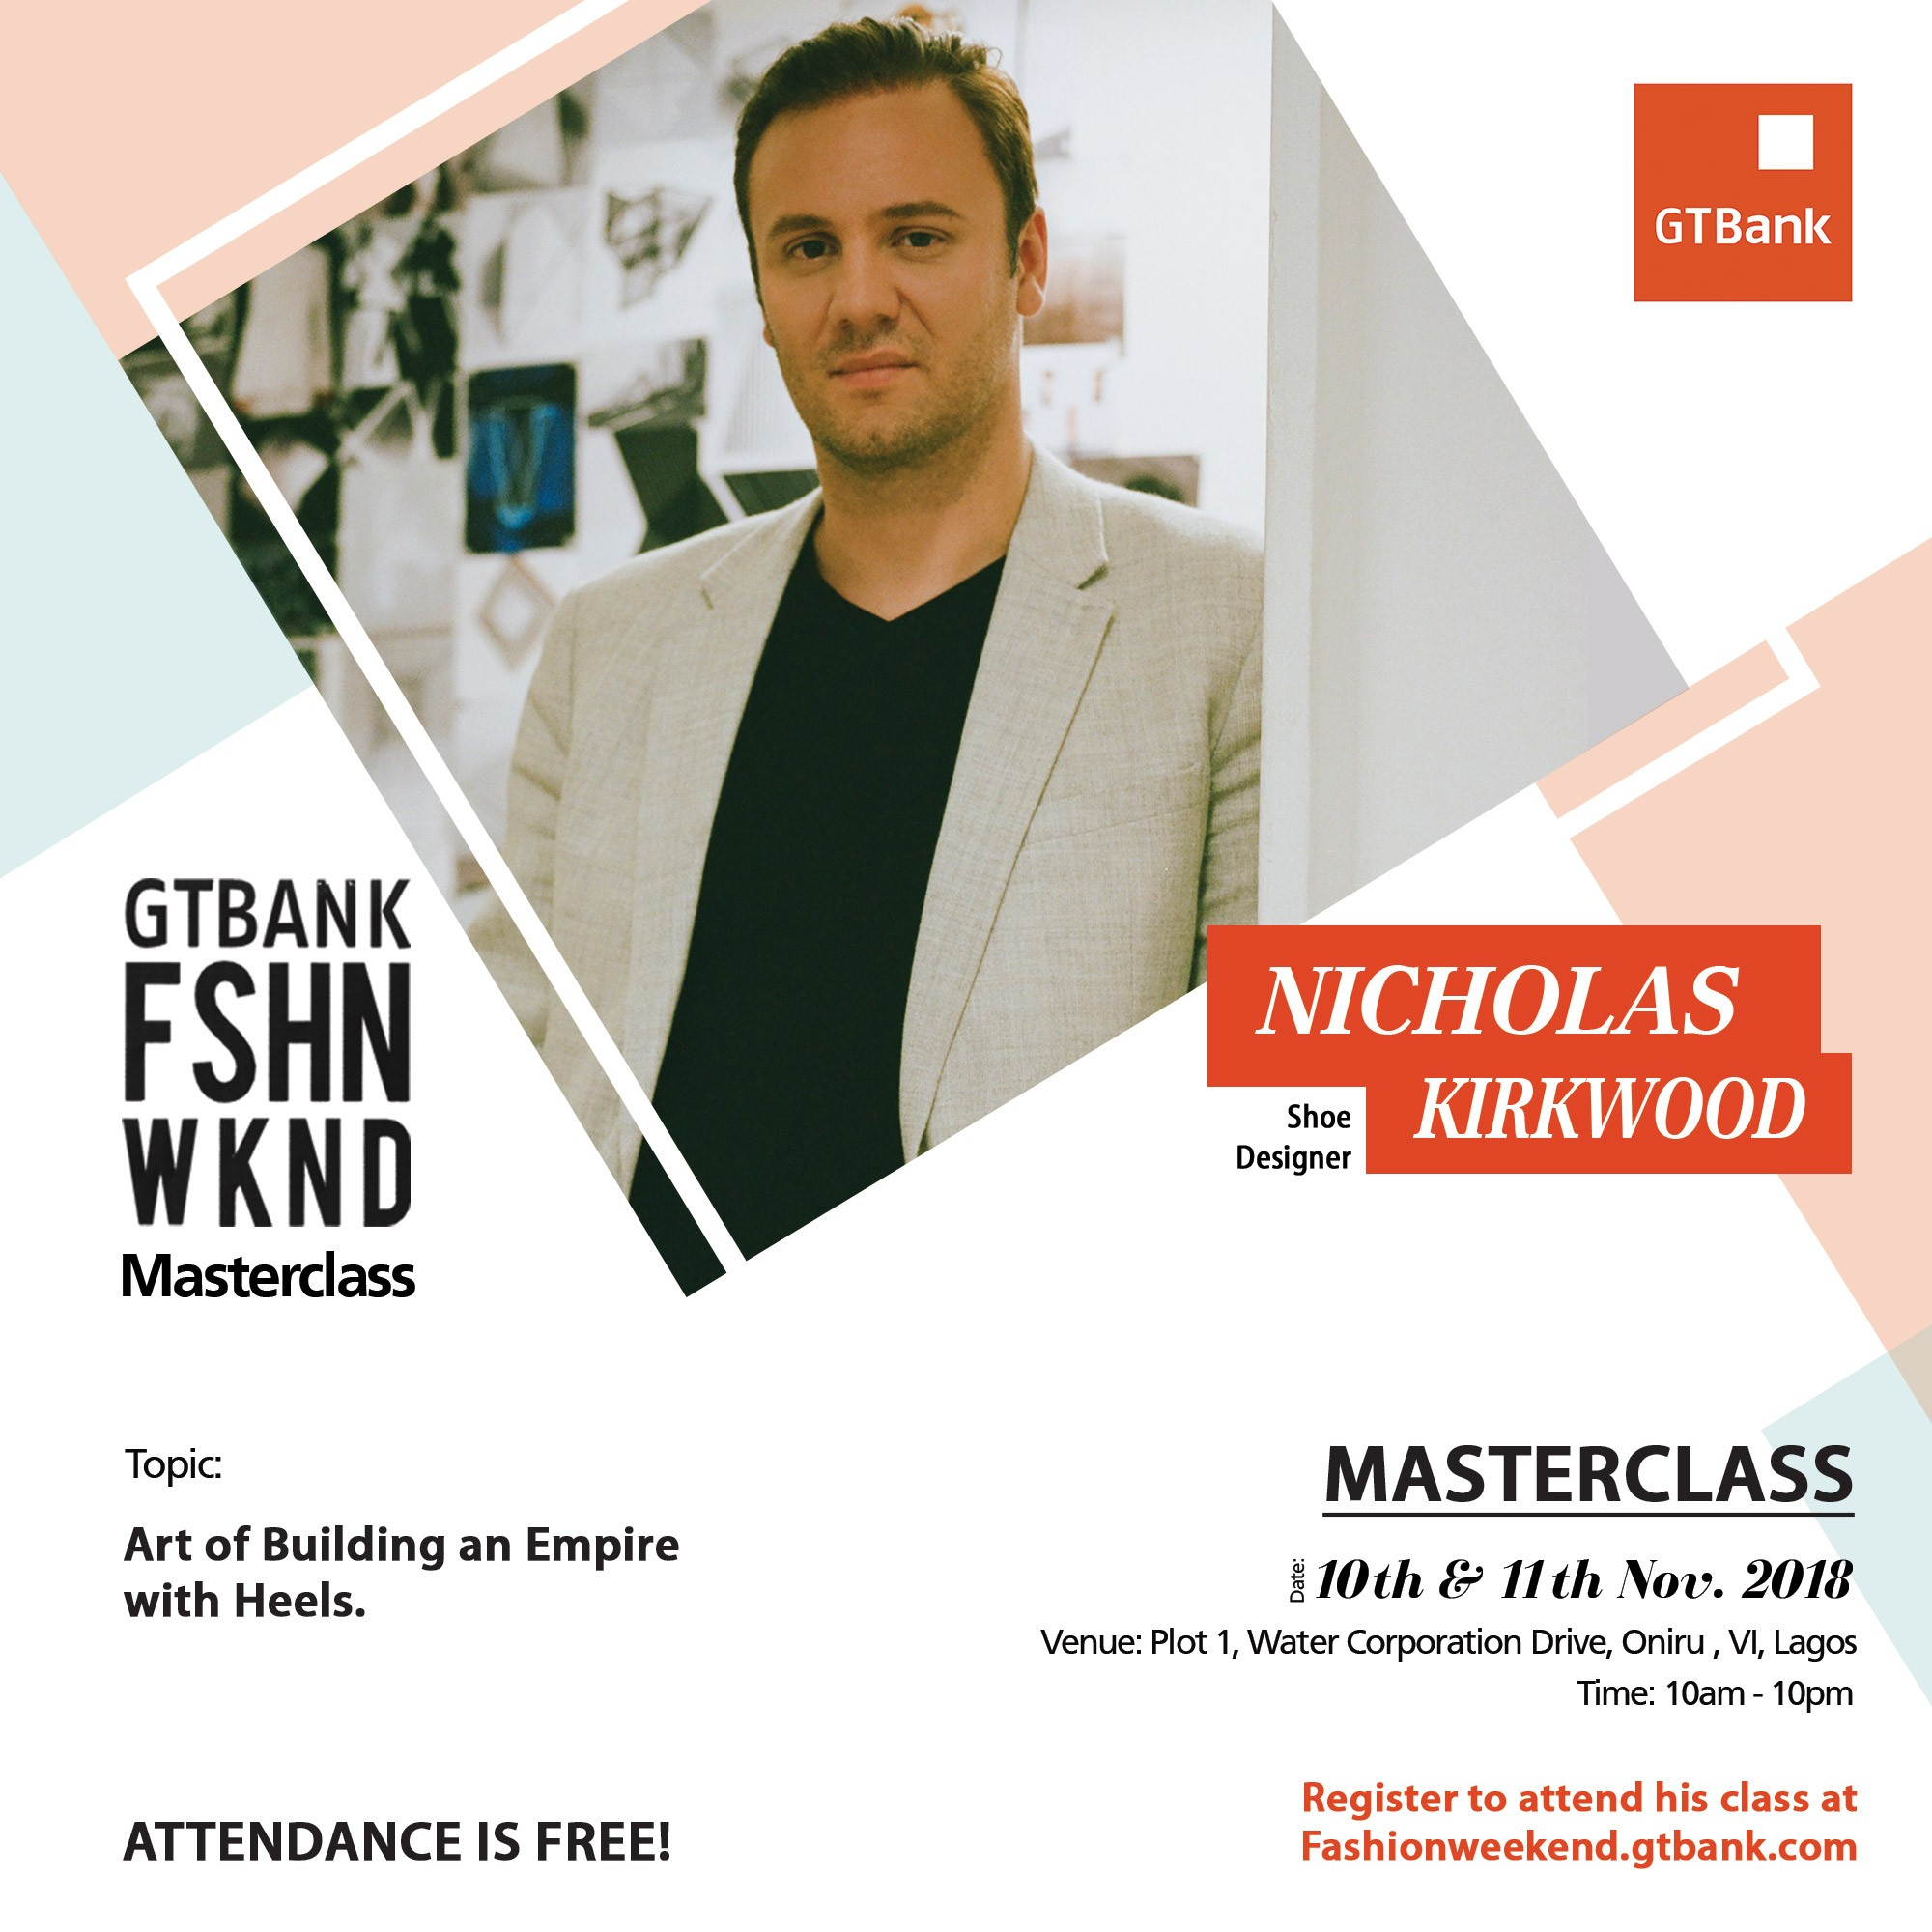 Learn how to Build an Empire with Heels from Award-Winning Shoe Designer, NICHOLAS KIRKWOOD - Join Nicholas in his Masterclass at the 2018 GTBank Fashion Weekend